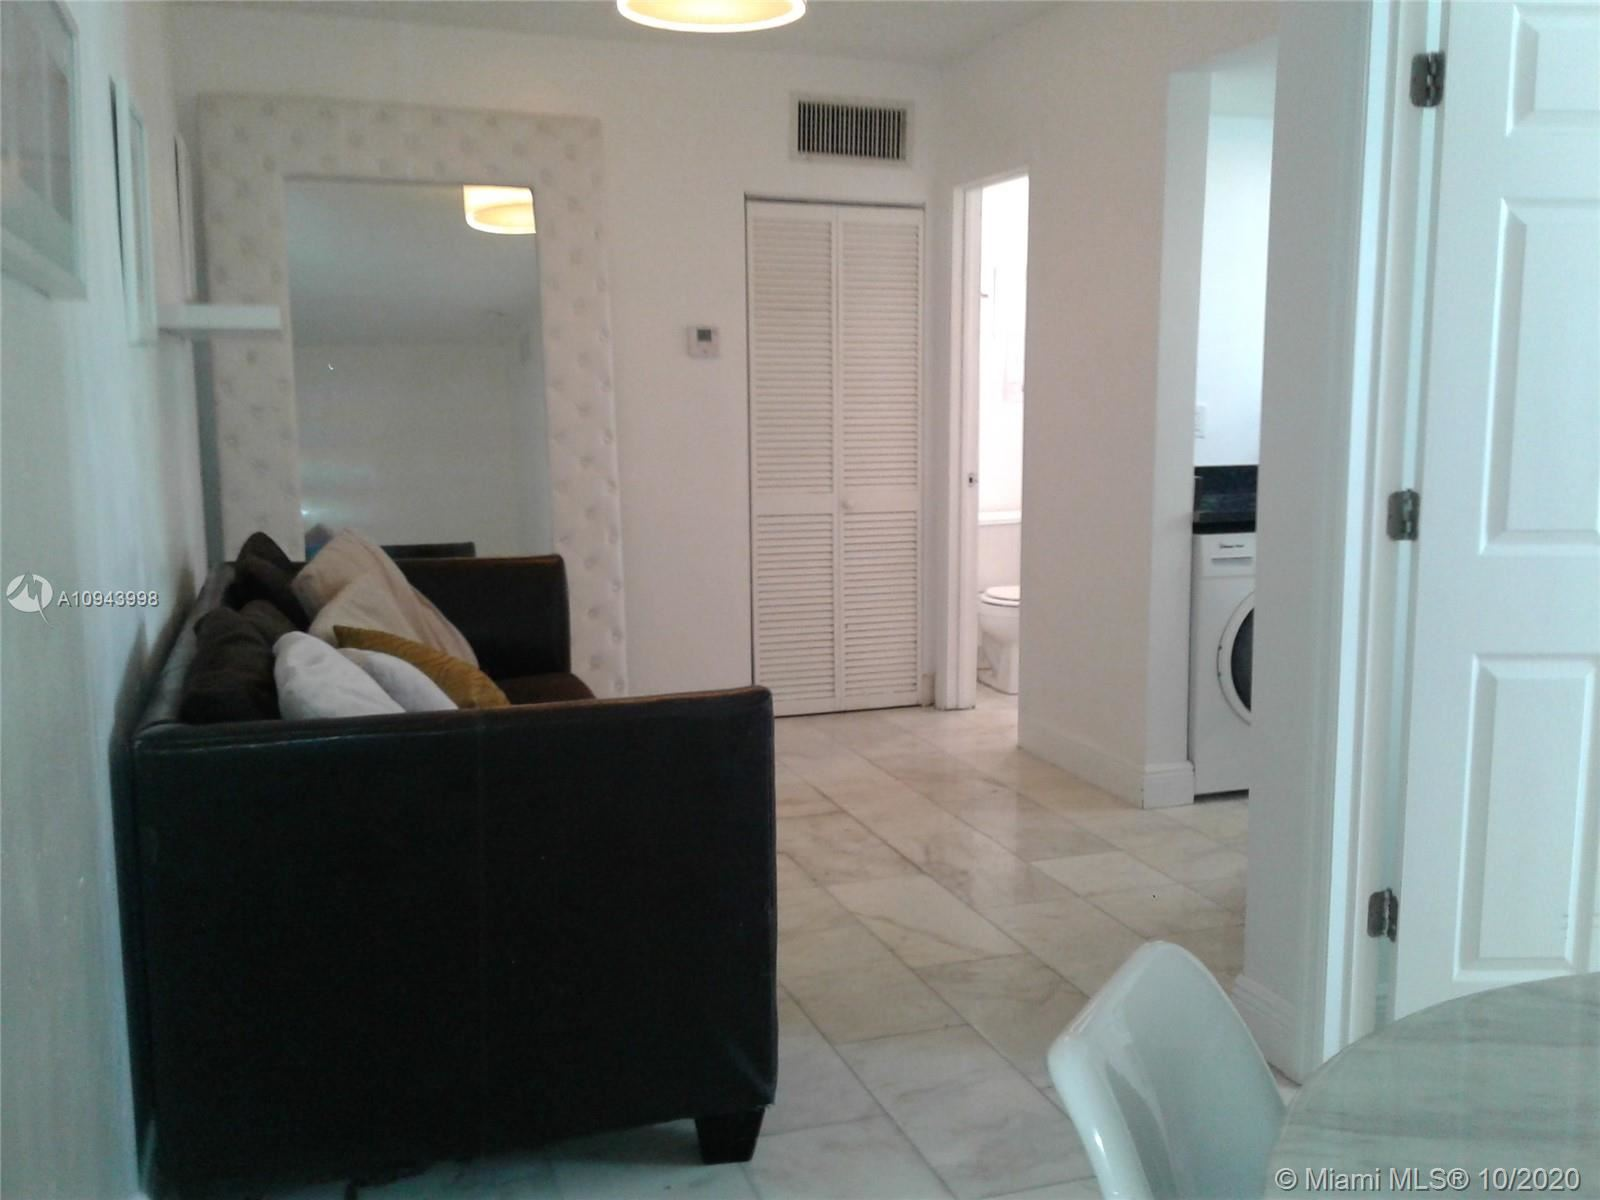 1526 Pennsylvania #15, Miami Beach, FL 33139 - #: A10943998